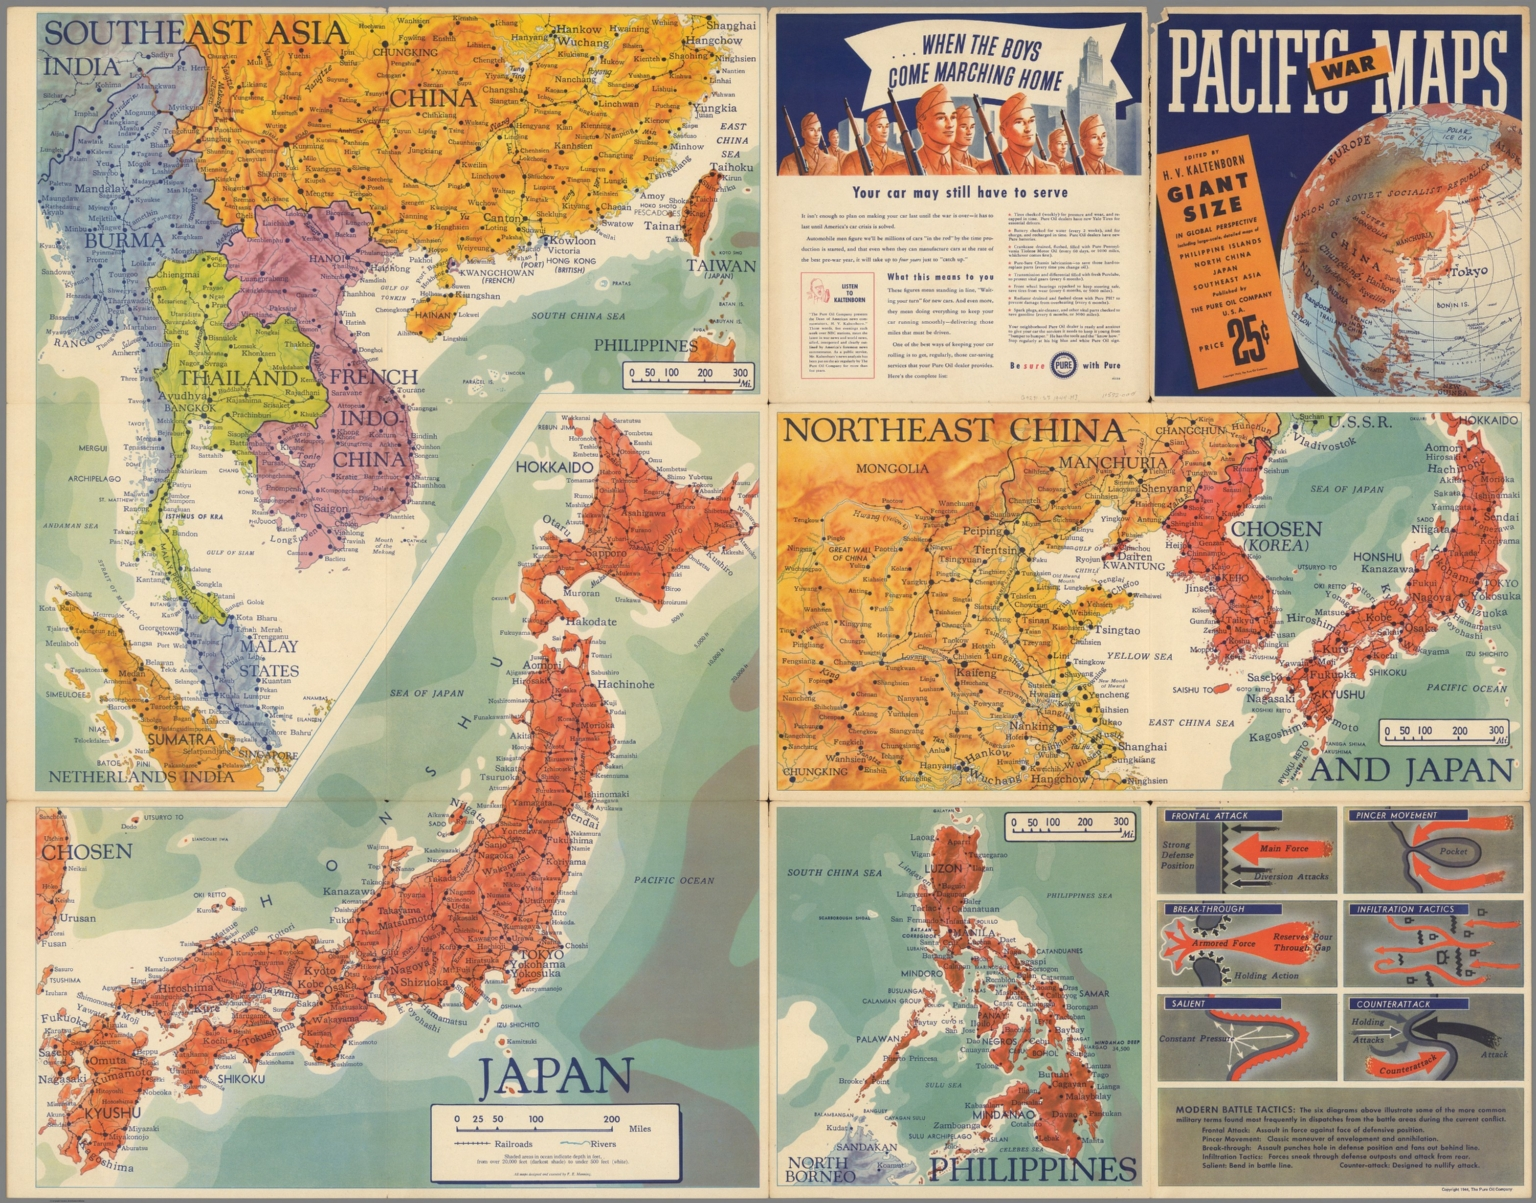 Map Of Asia Japan And China.Southeast Asia Japan Northeast China Philippines David Rumsey